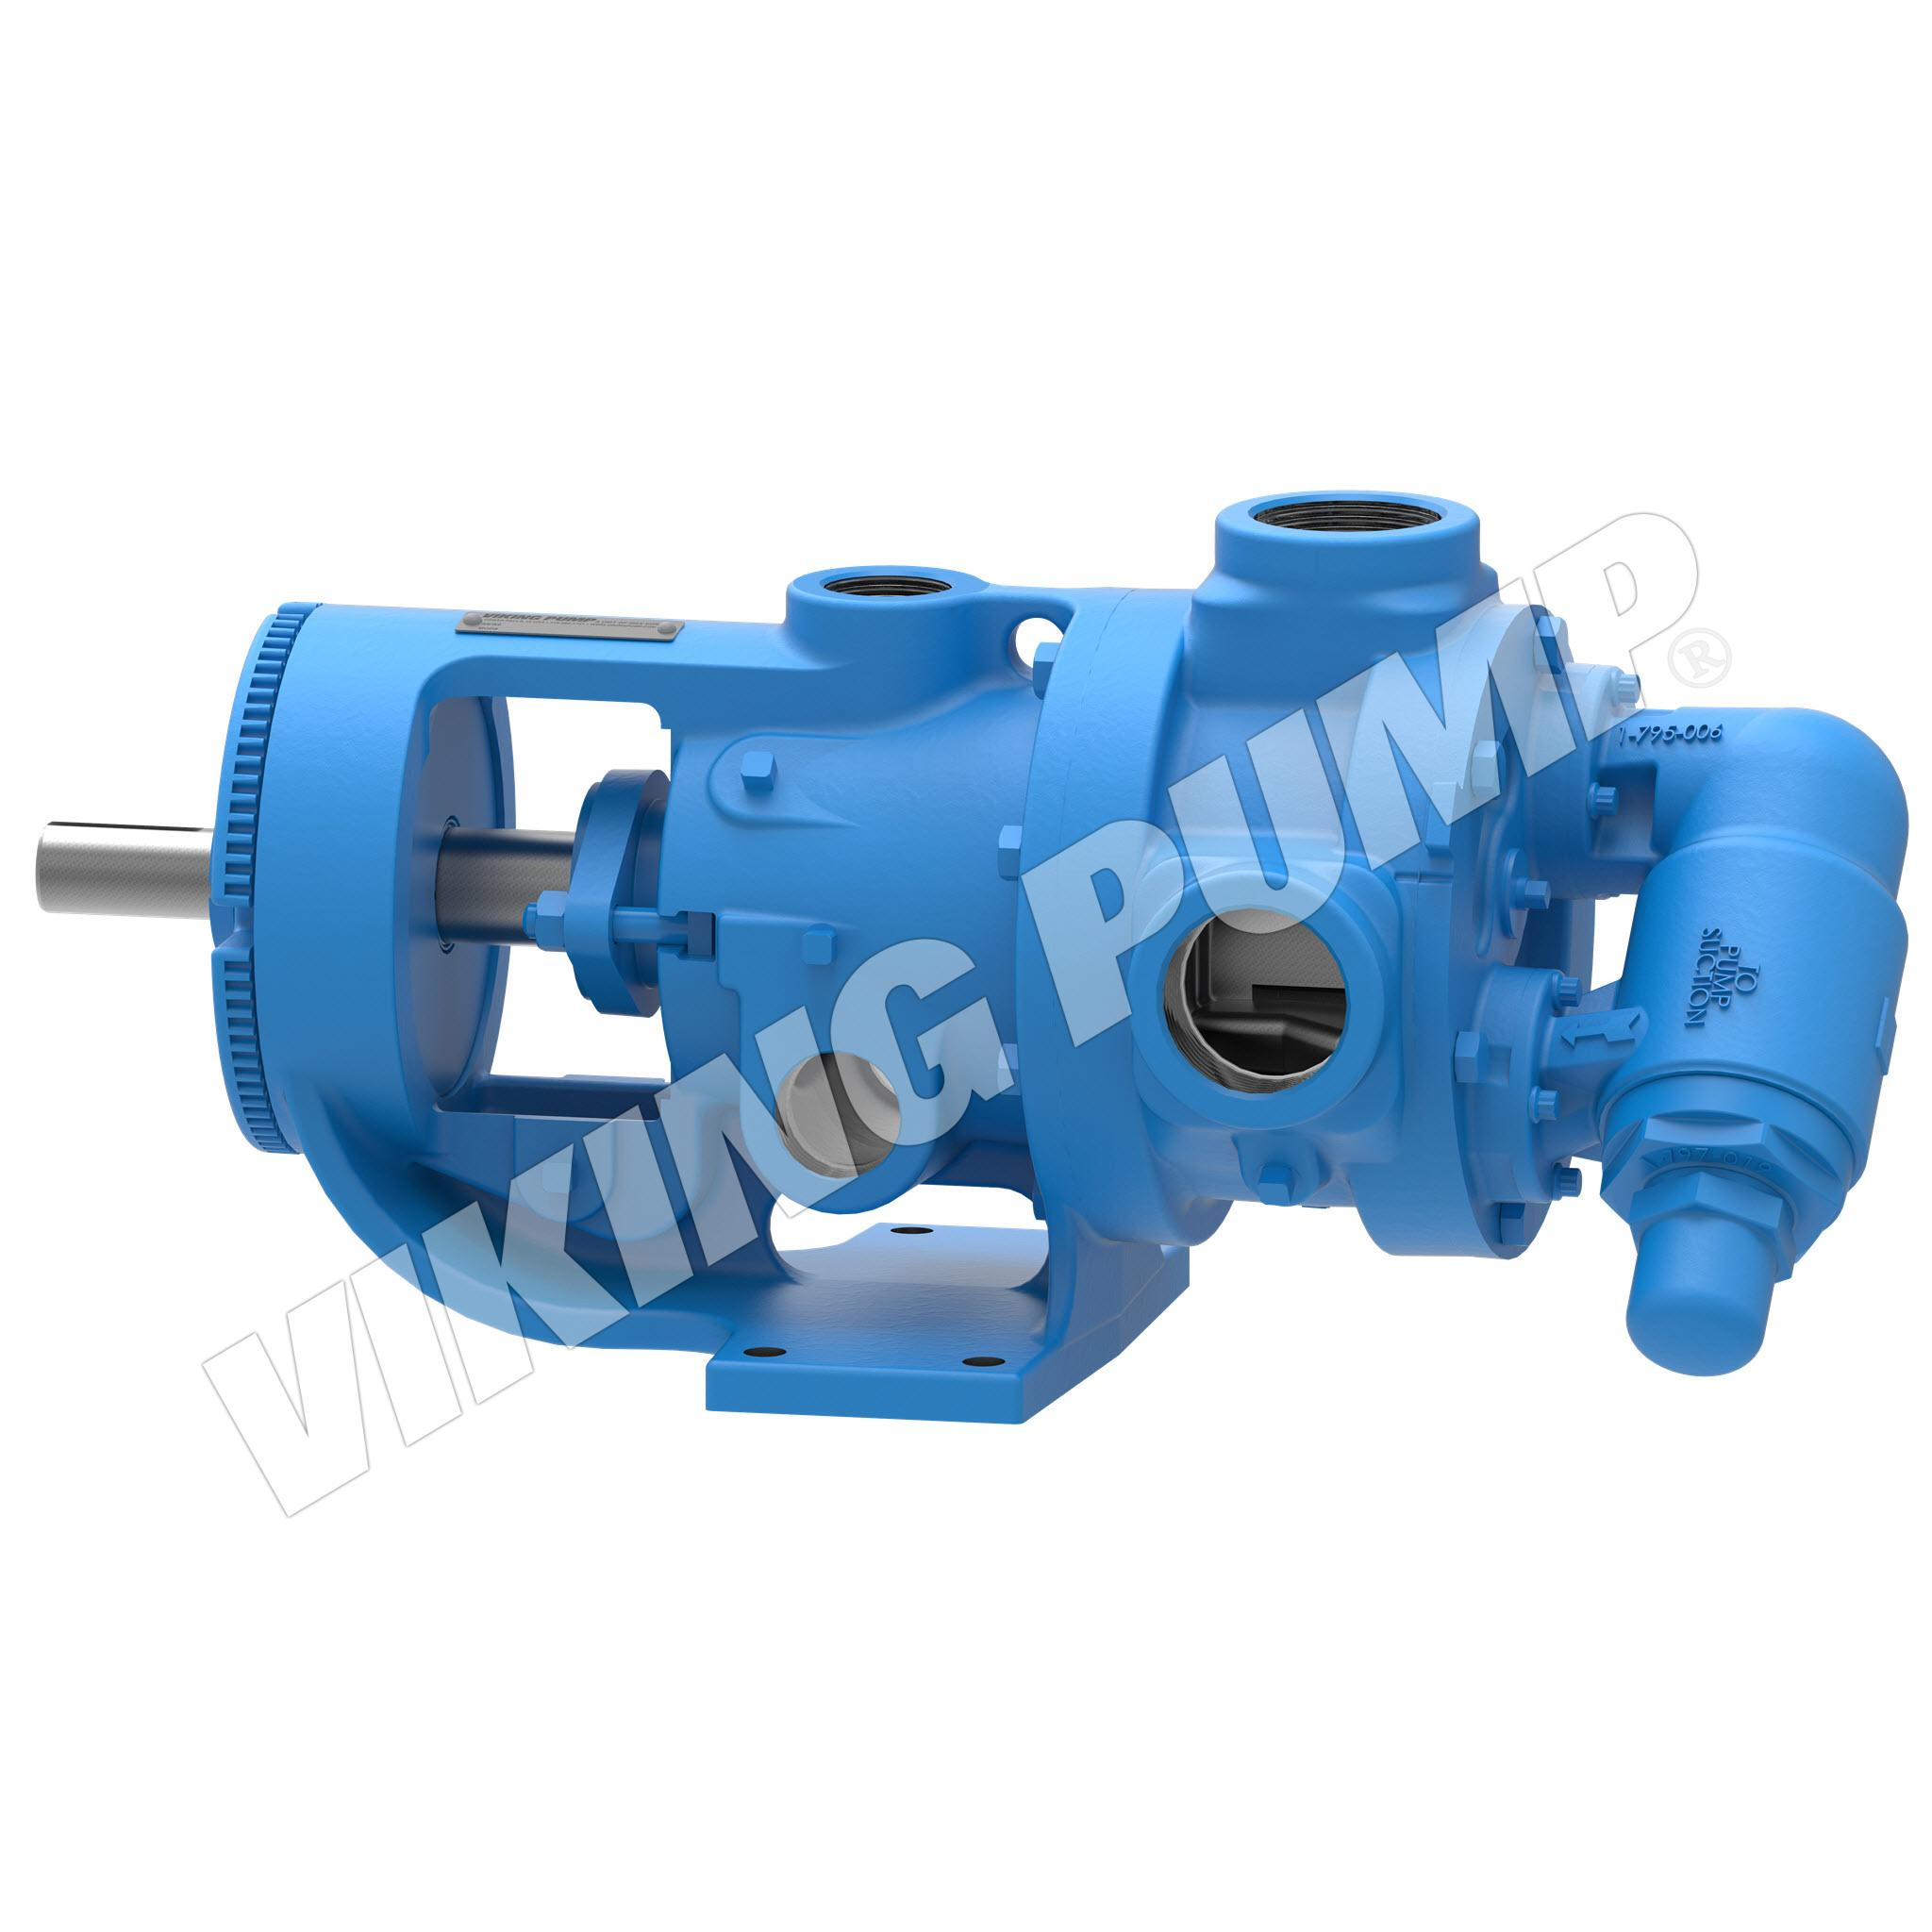 Model K226A, Foot Mounted, Packed Gland Pump w/Optional Relief Valve